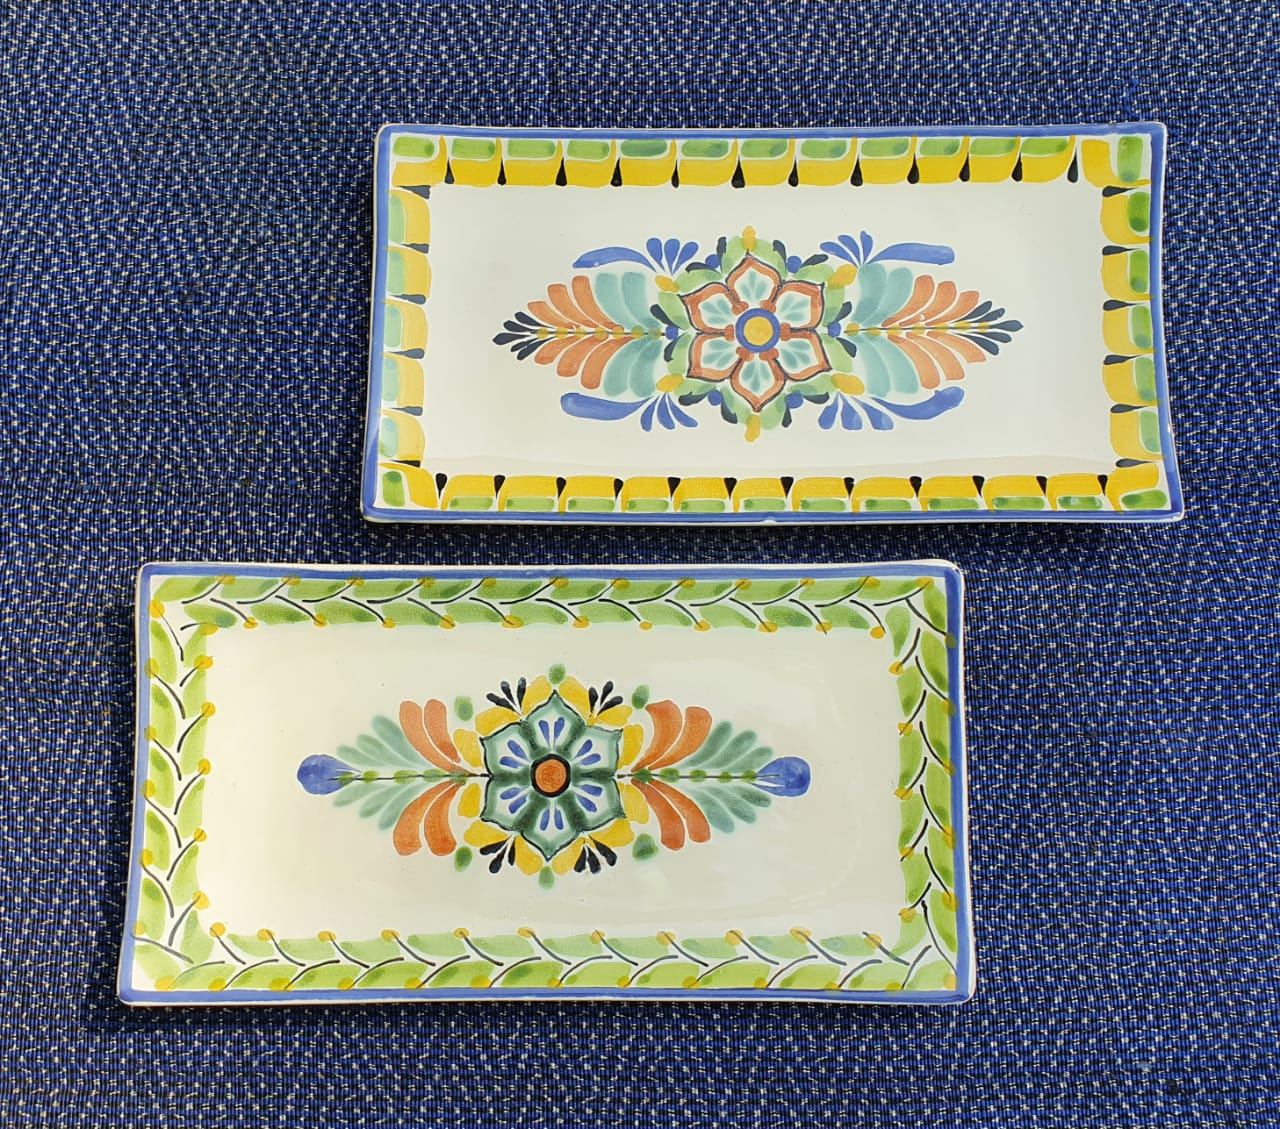 Flower Tray Small Rectangular Plate 11*5.7